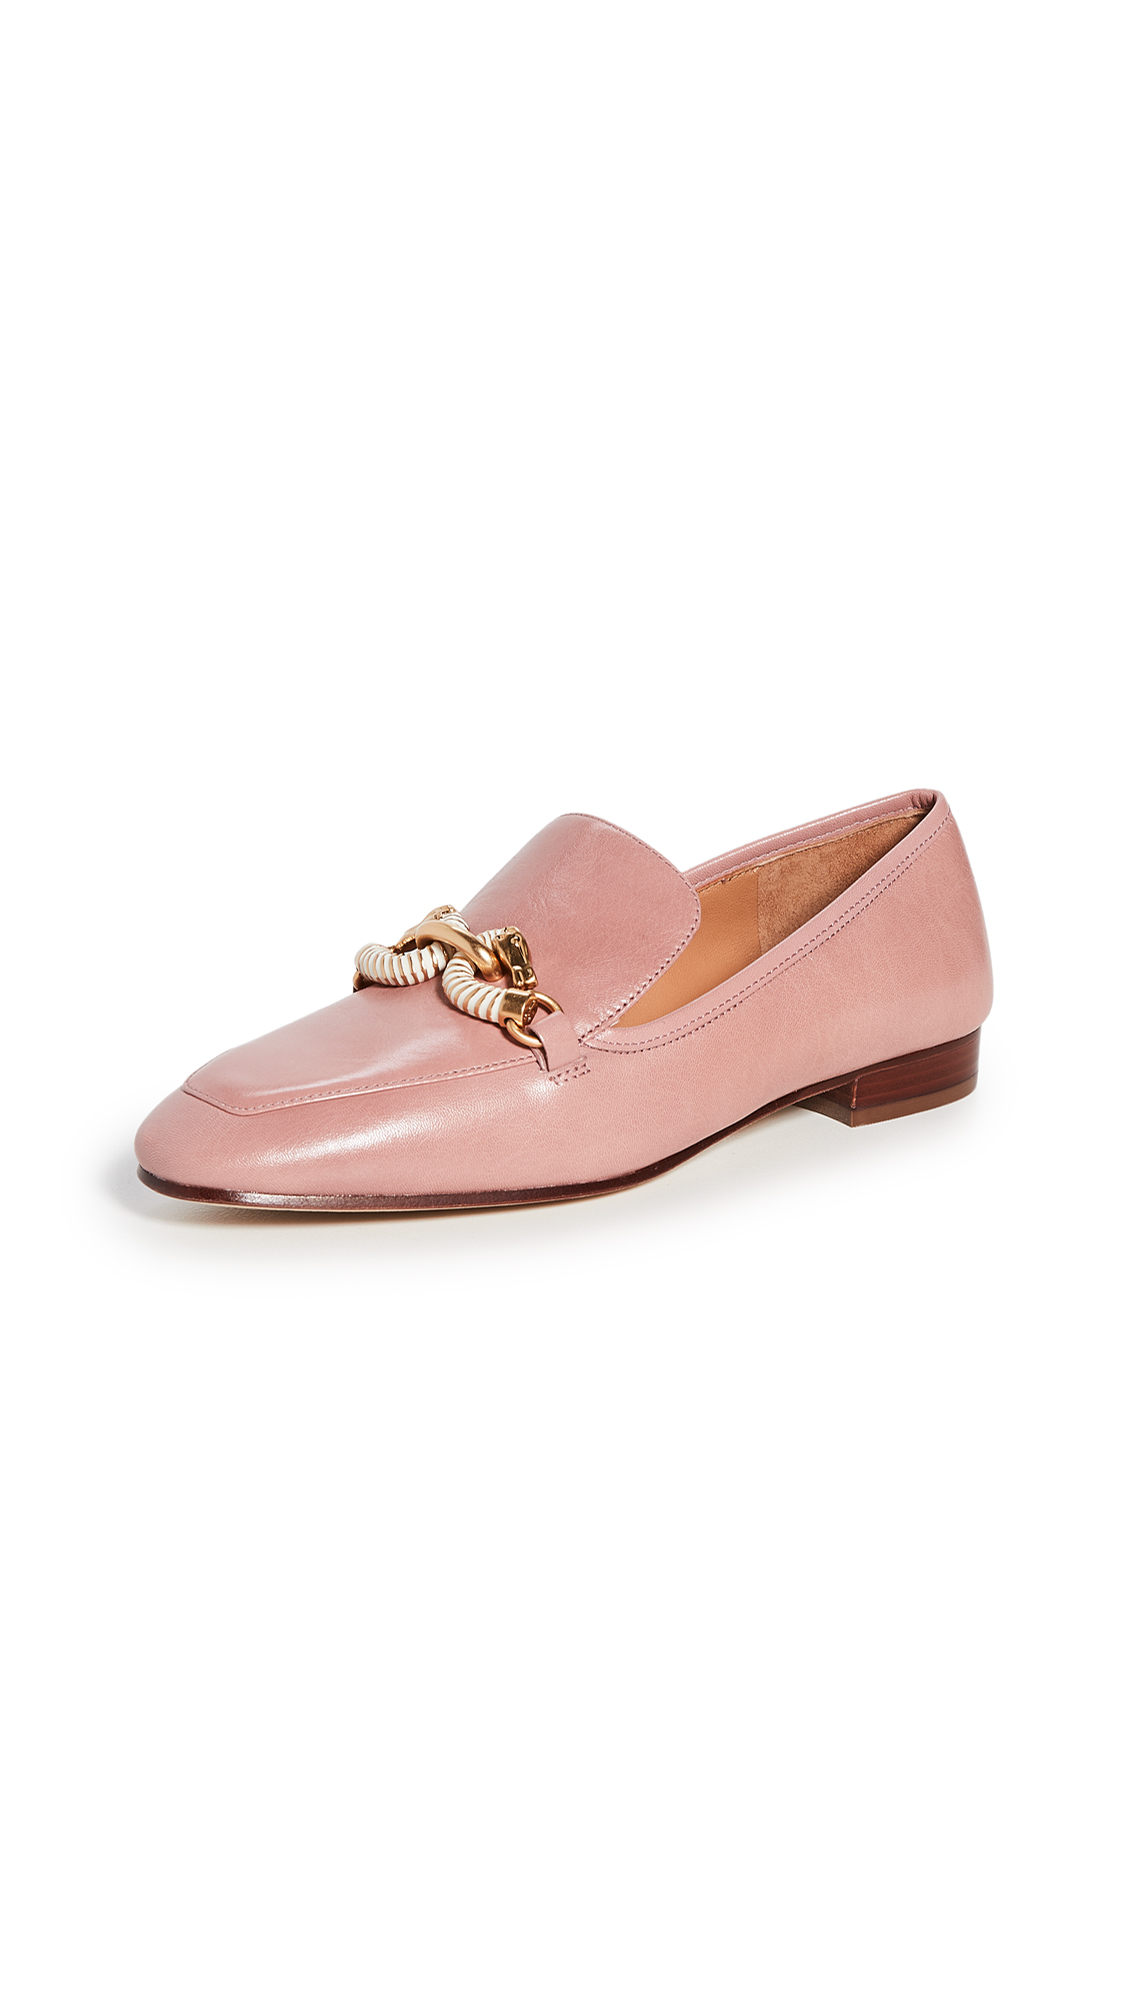 Tory Burch 20mm Jessa Loafers